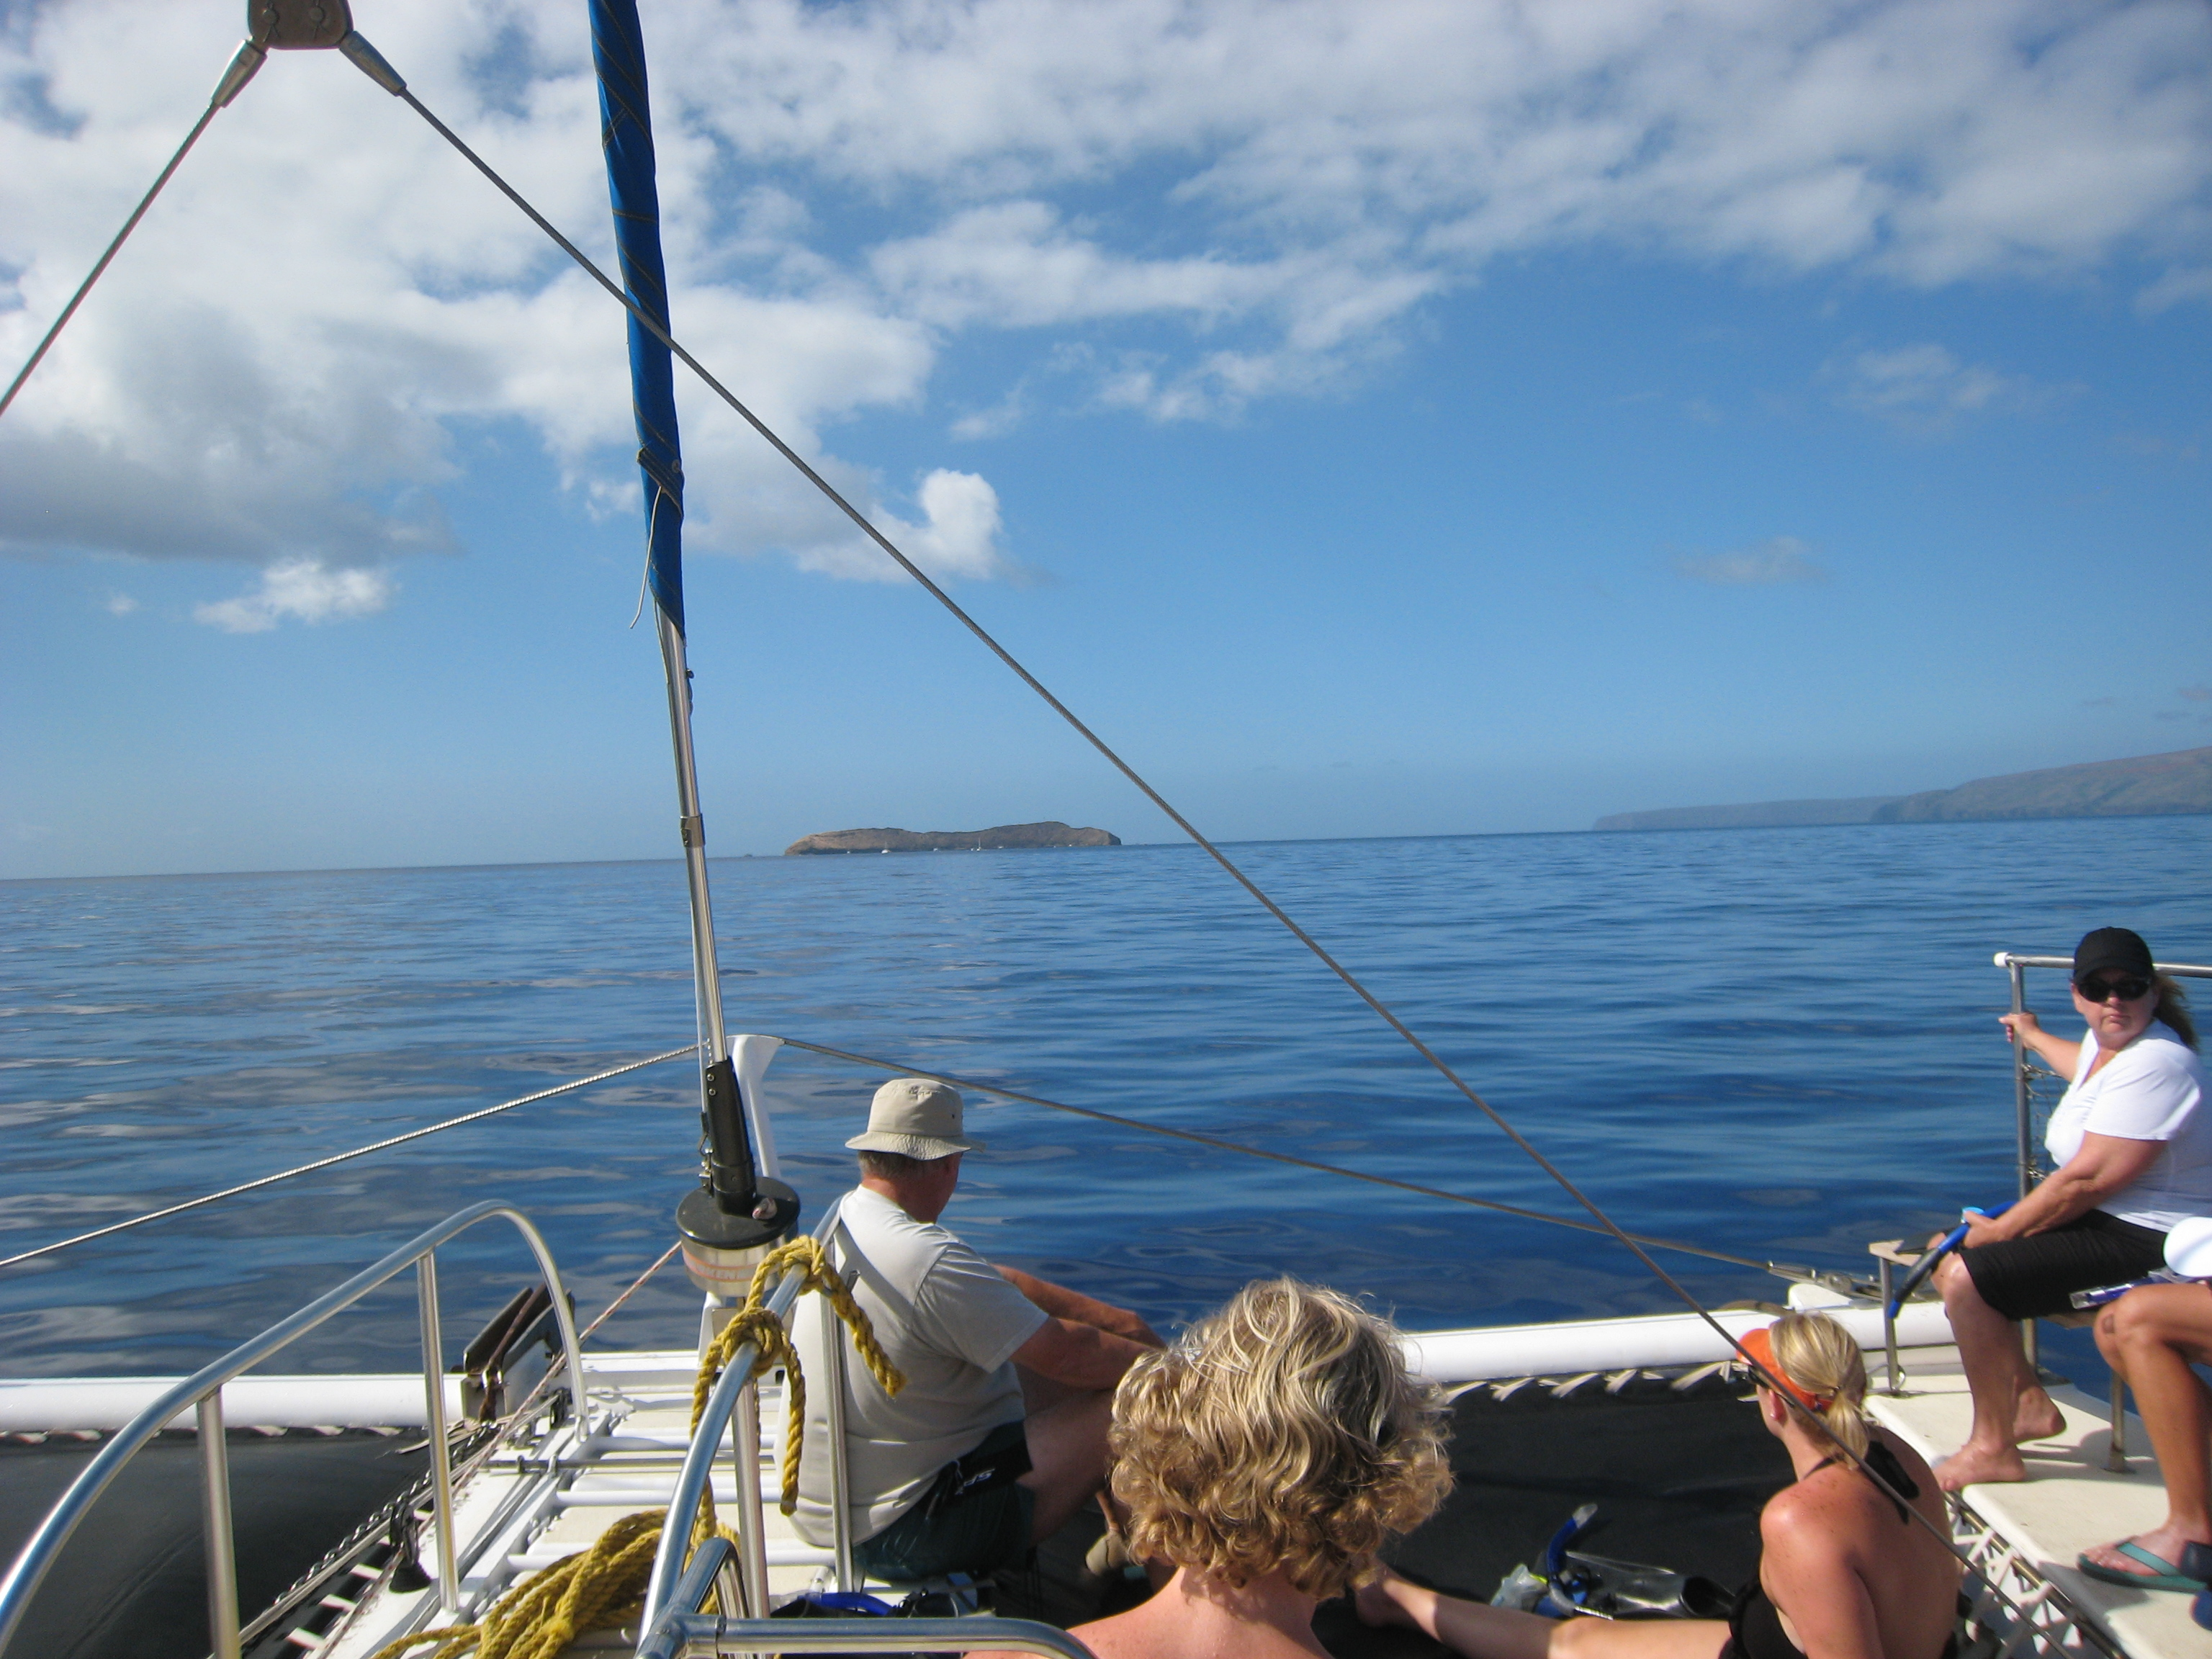 On our way to Molokini